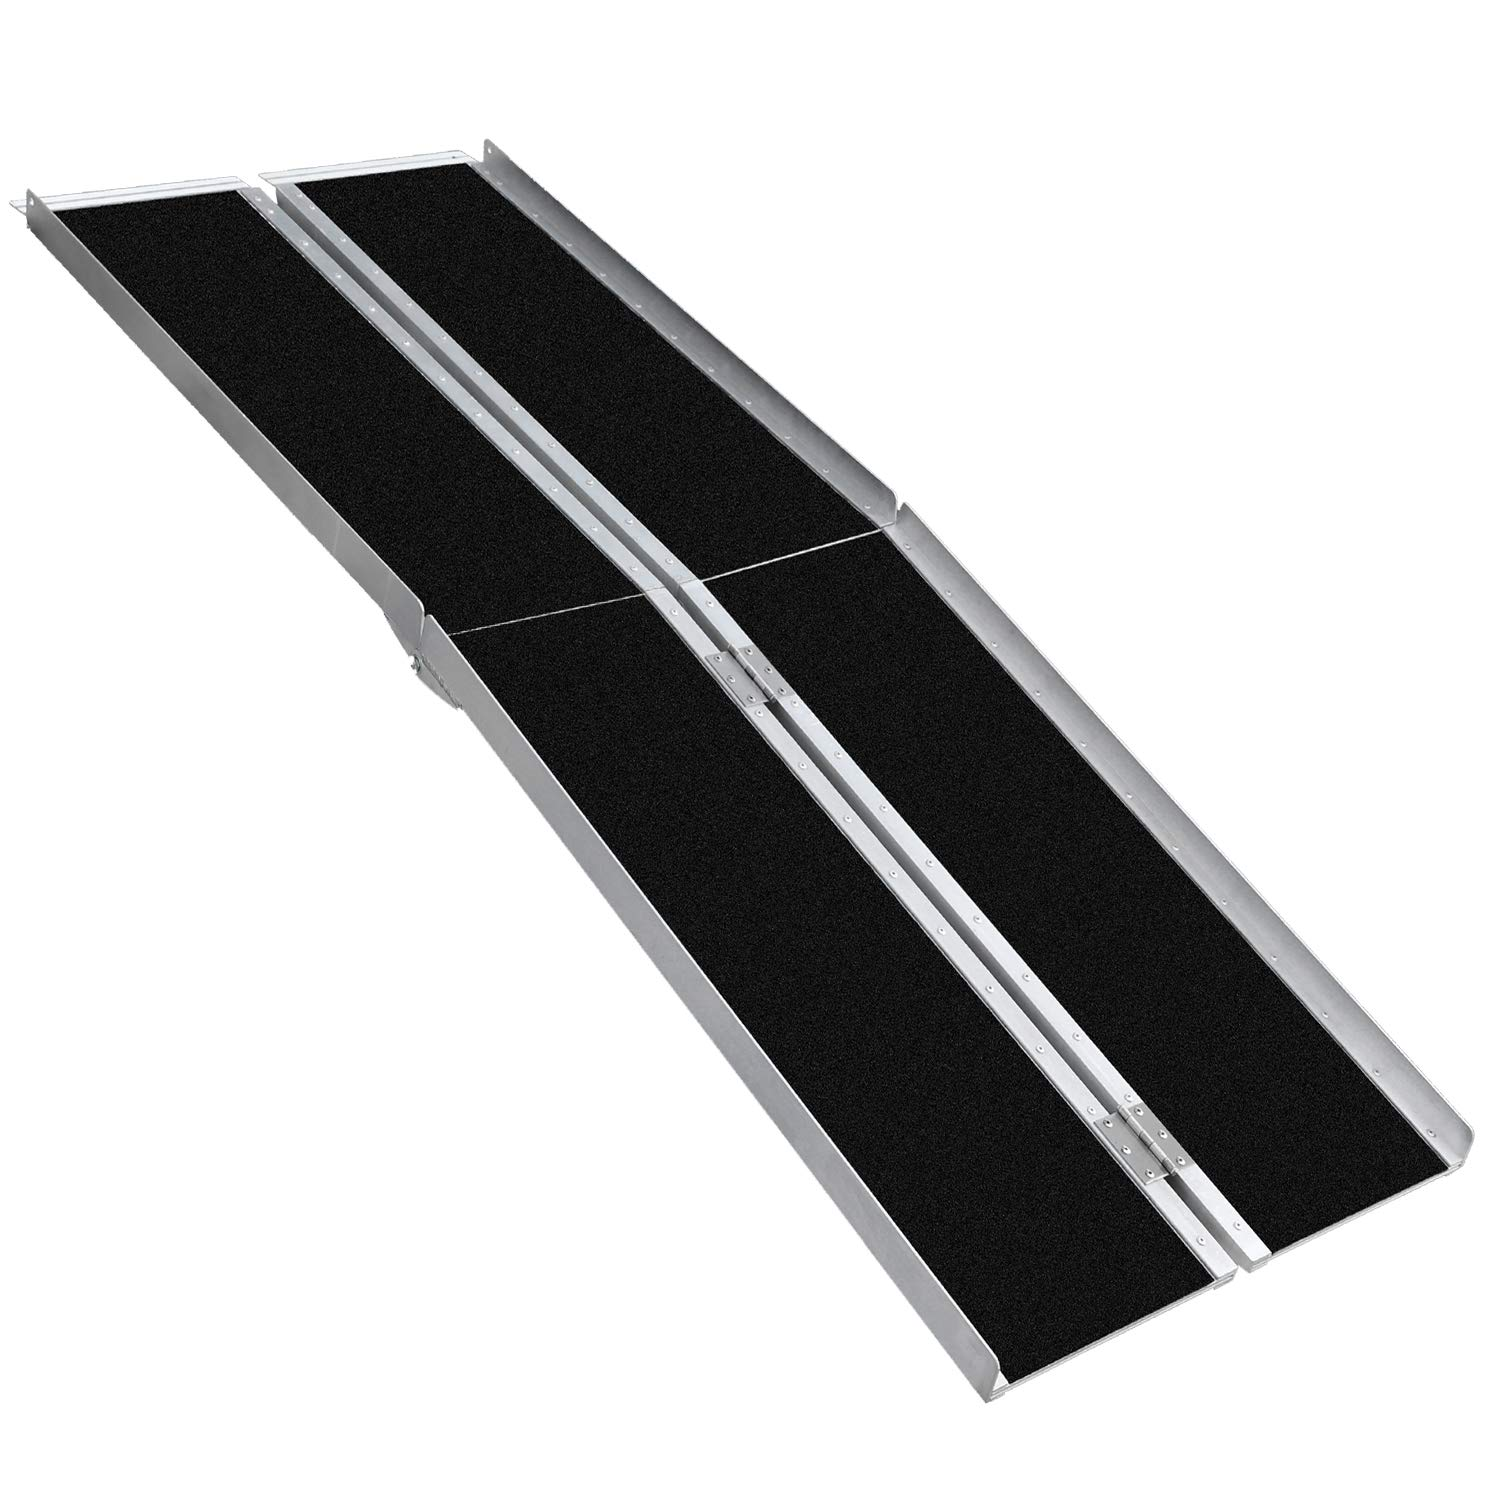 Aluminum Multifold Wheelchair Ramp Non-Skid Folding Mobility Scooter Portable Traction Ramp with Carrying Handle 6 Feet